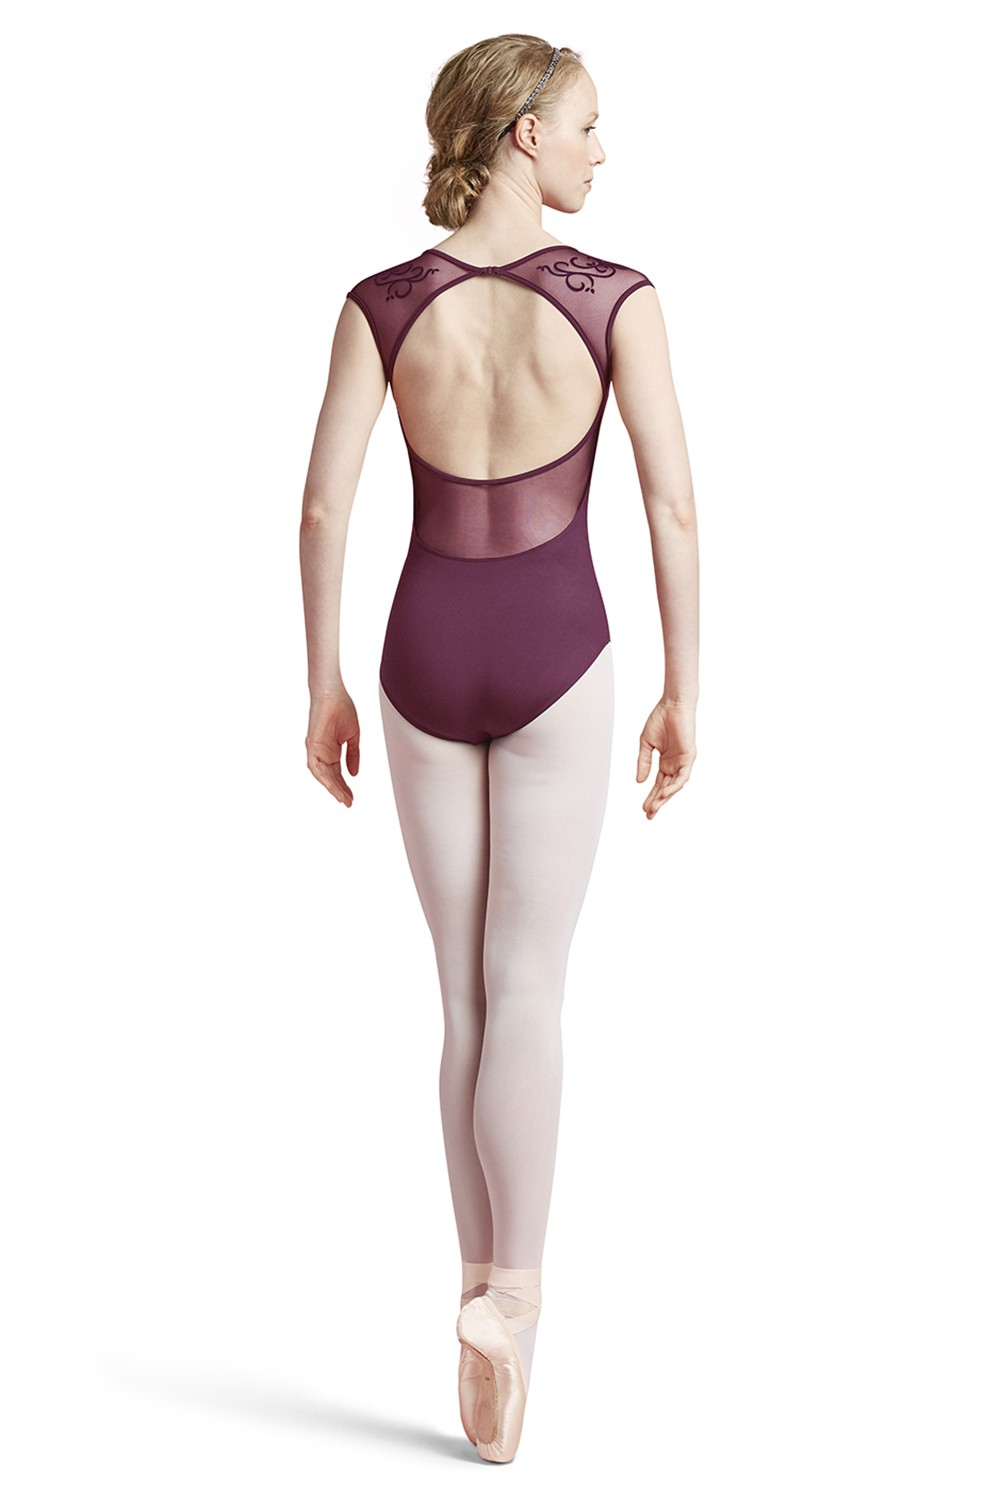 Amie Women's Dance Leotards